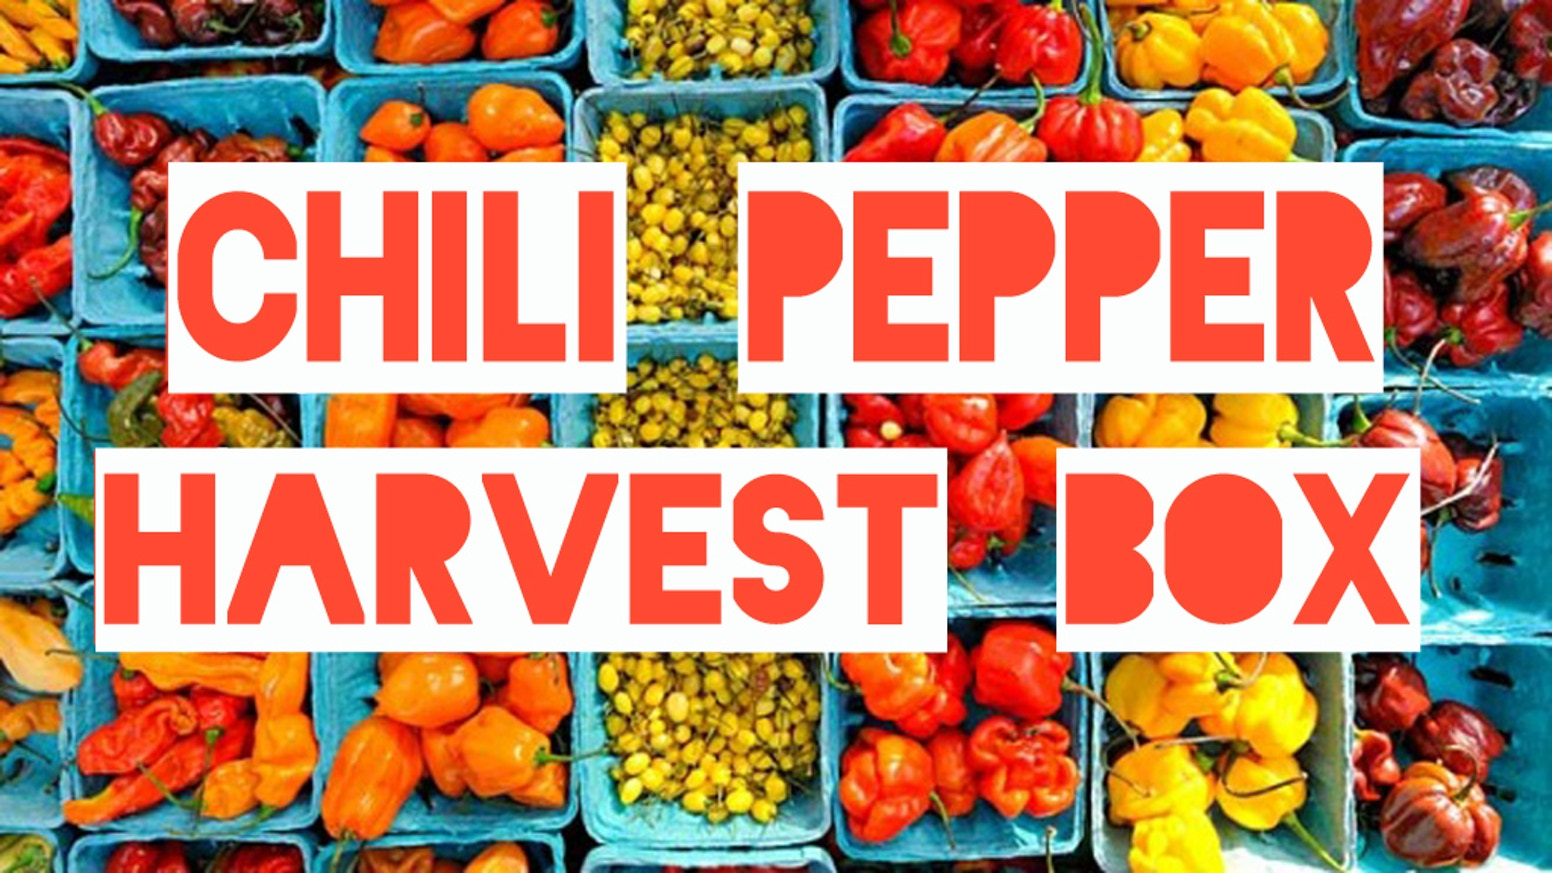 Get a monthly box of the rarest chili peppers on the planet, in all ranges of heat. Organically grown, fresh from the farm to you,